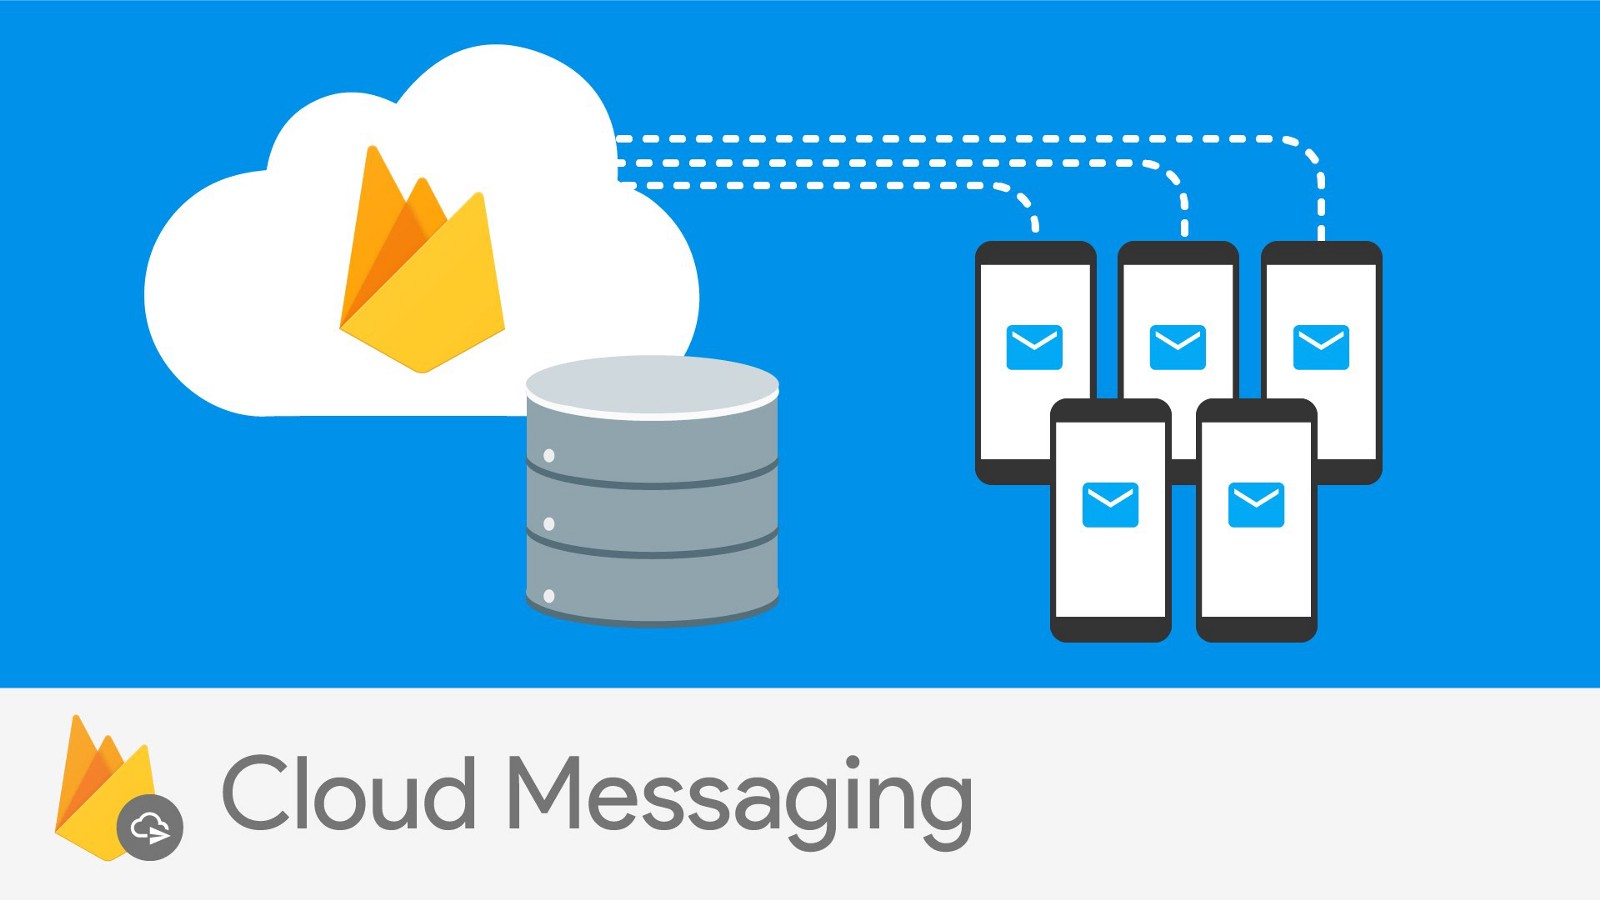 Cloud Messaging